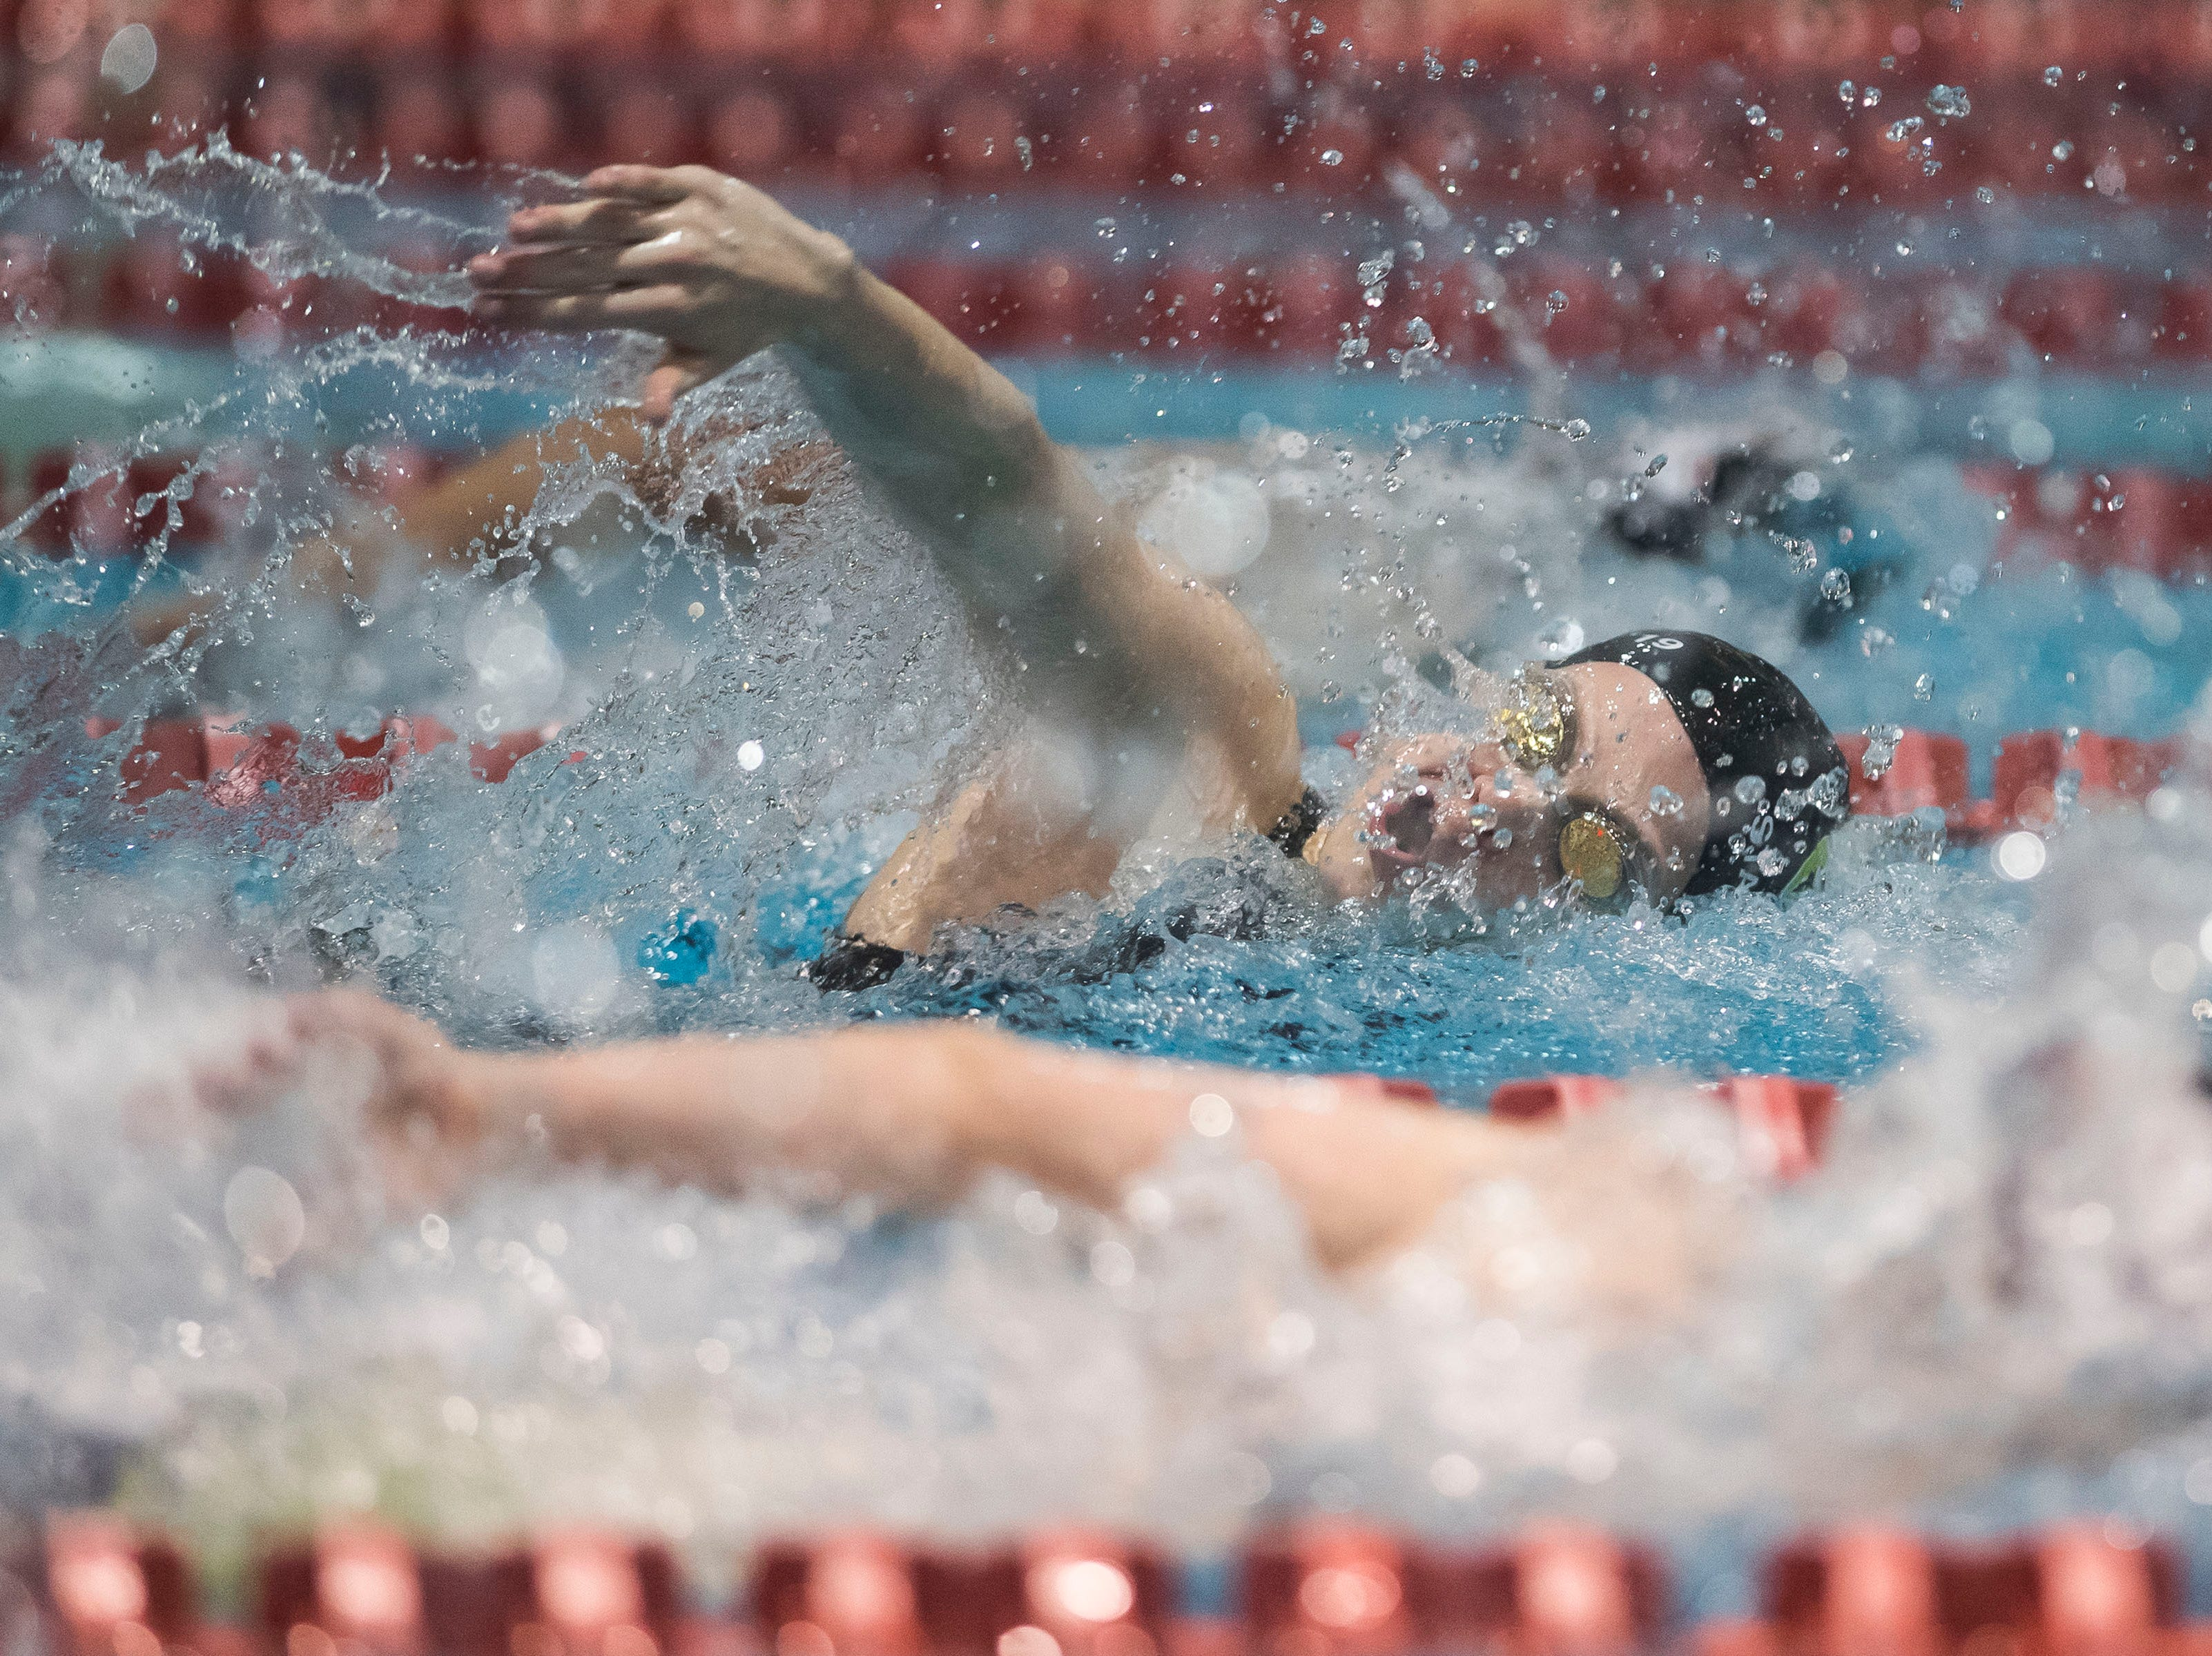 Fossil Ridge sophomore Mahala Erlandson competes in the women's 400 yard freestyle relay on Saturday, Feb. 9, 2019, at Veterans Memorial Aquatic Center in Thornton, Colo.